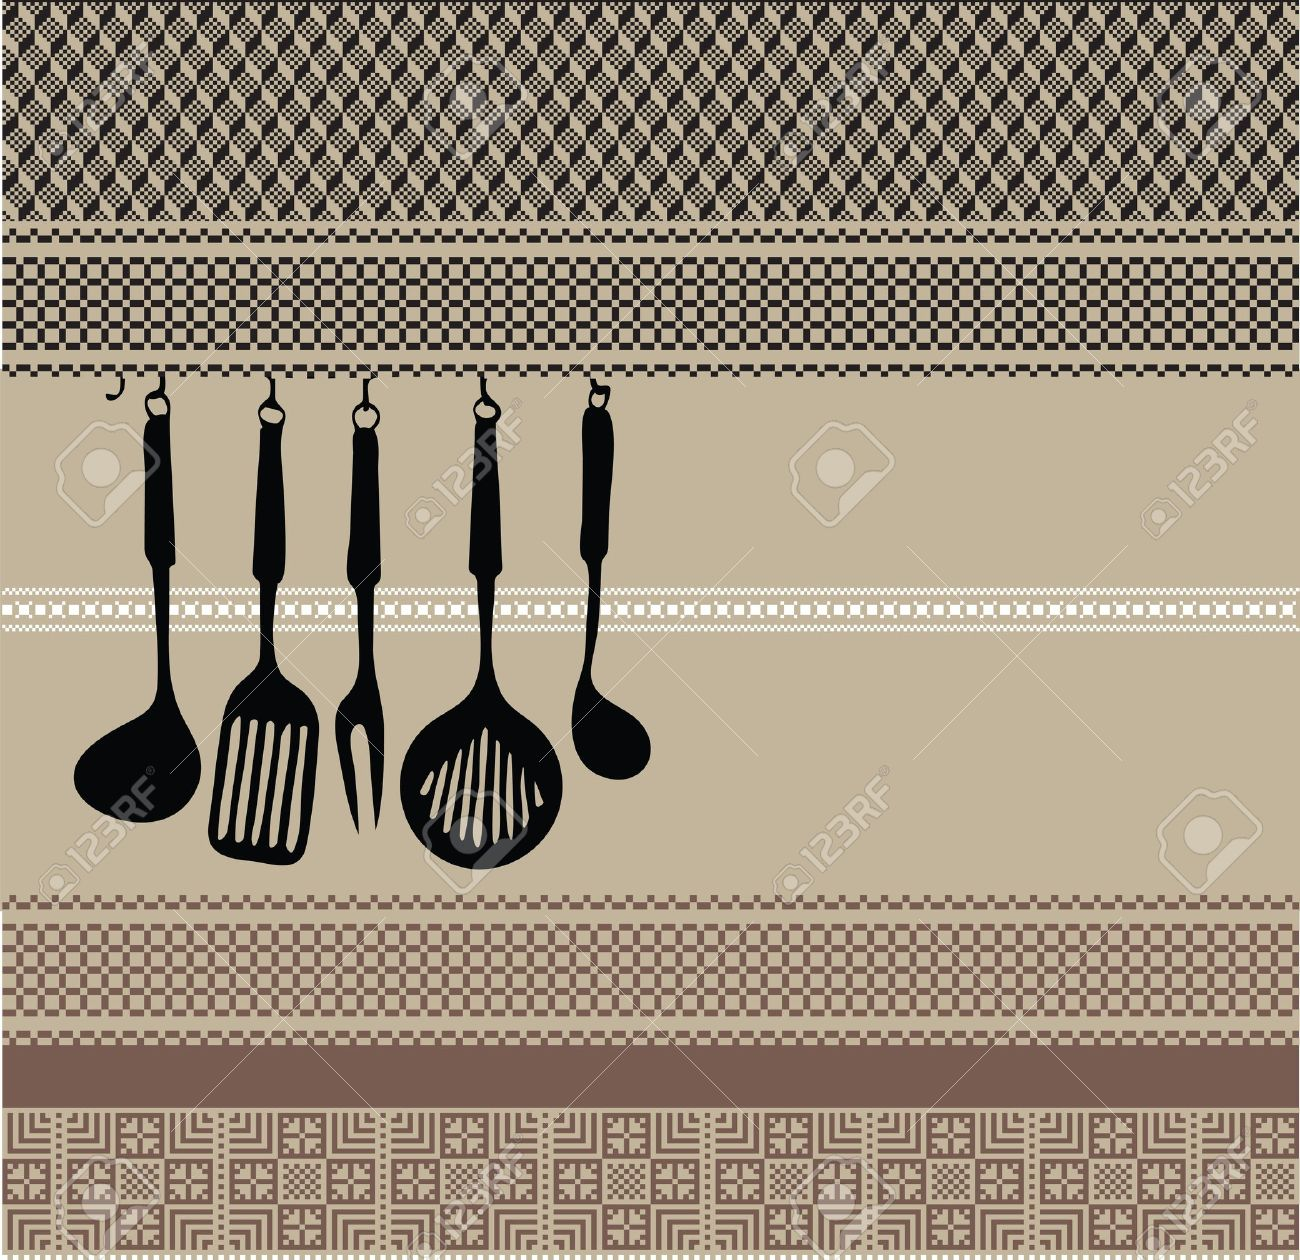 Kitchen Utensils Background rack of kitchen utensils on ancient background royalty free